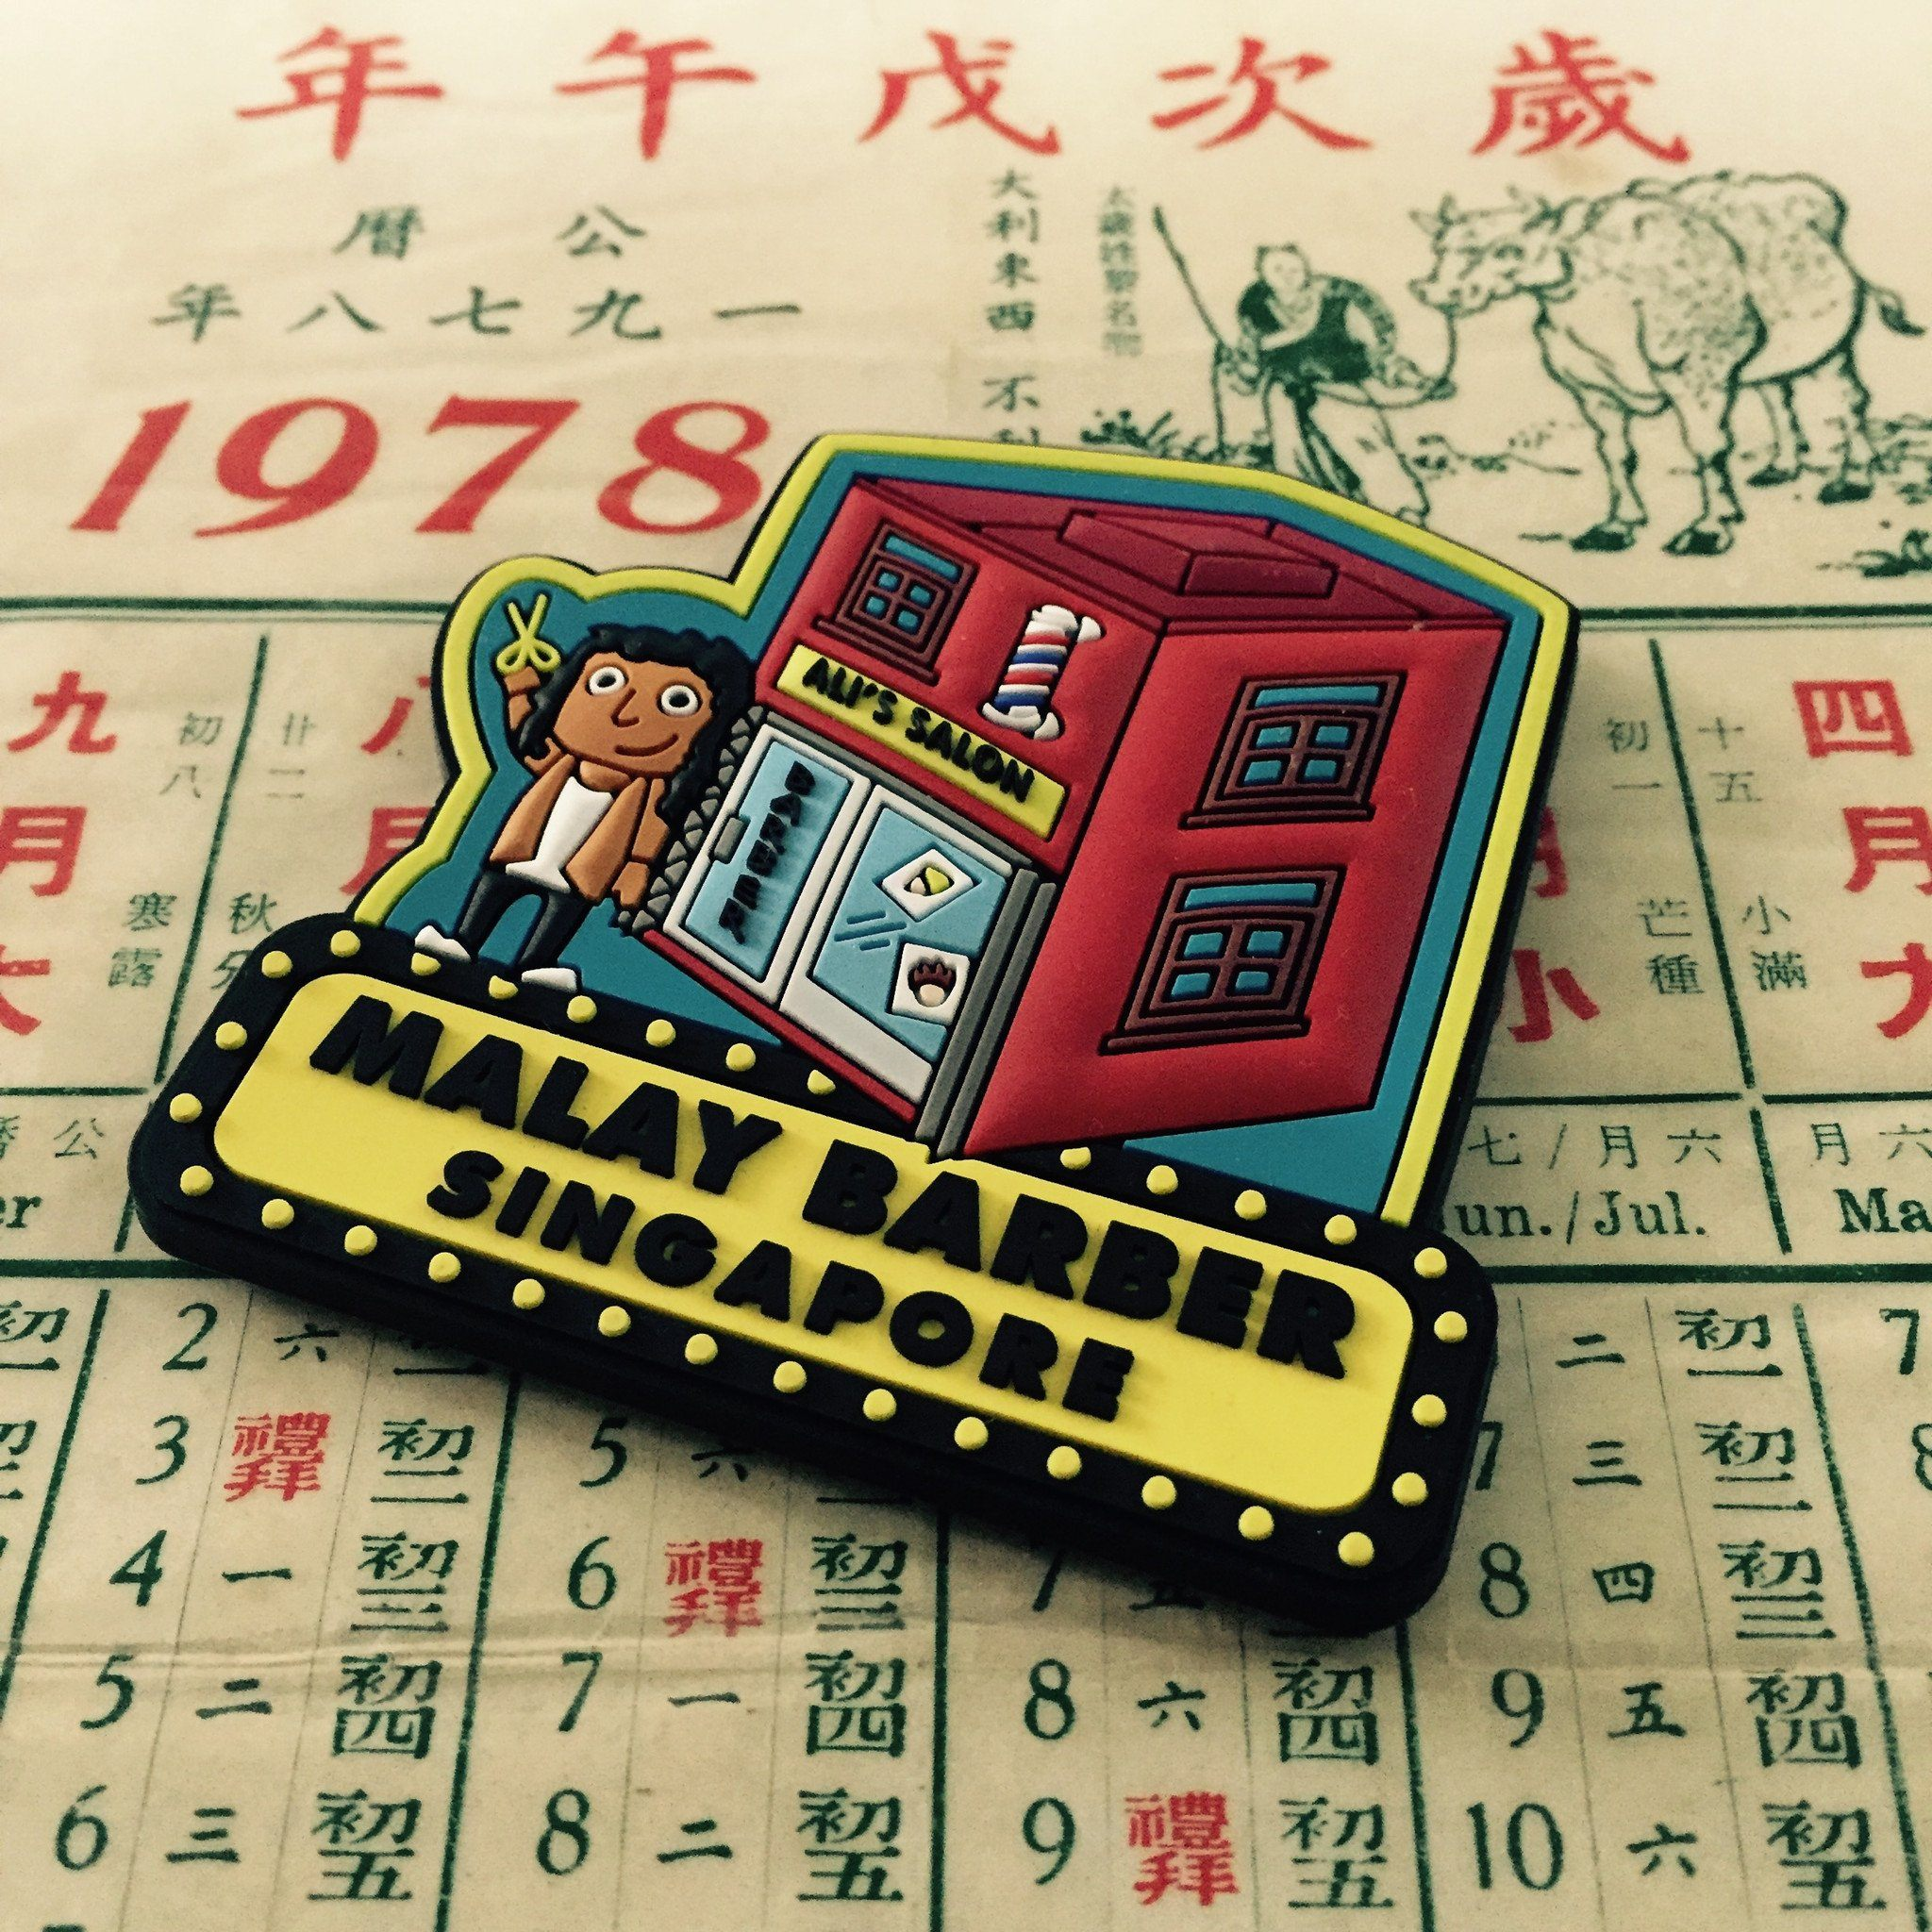 Malay Barber Magnet Local Magnets Little Red Box